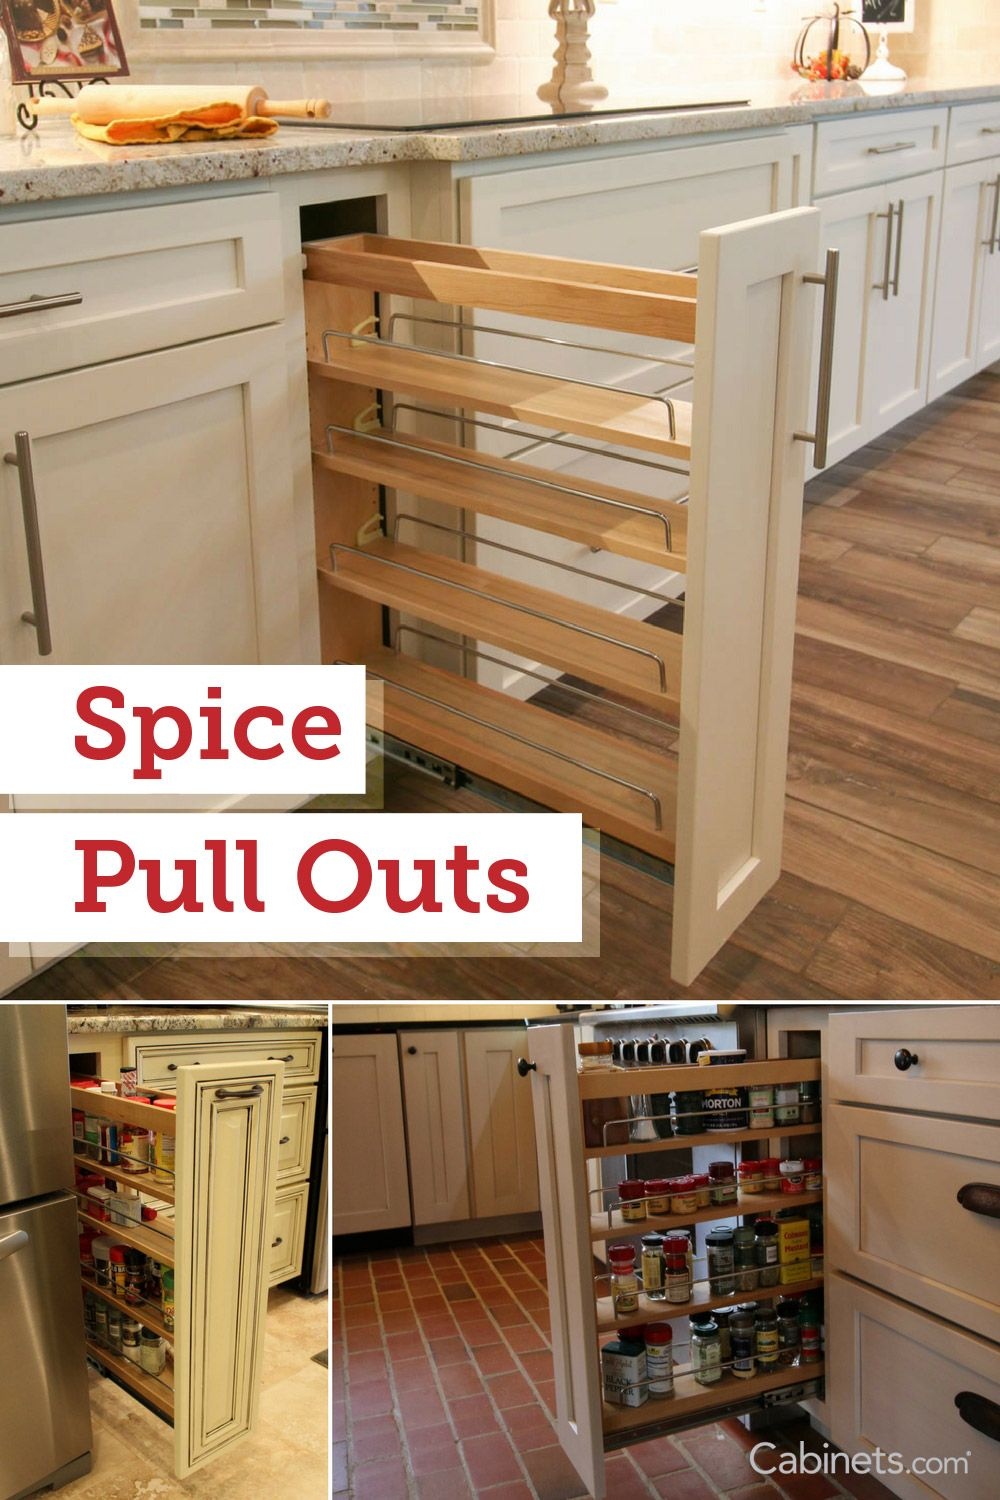 Cabinet Feature Like The Spice Pull Out Is Beneficial Custom Options To Incorporate Into Your New Kitchen View M Home Decor Kitchen Kitchen Plans Kitchen Redo